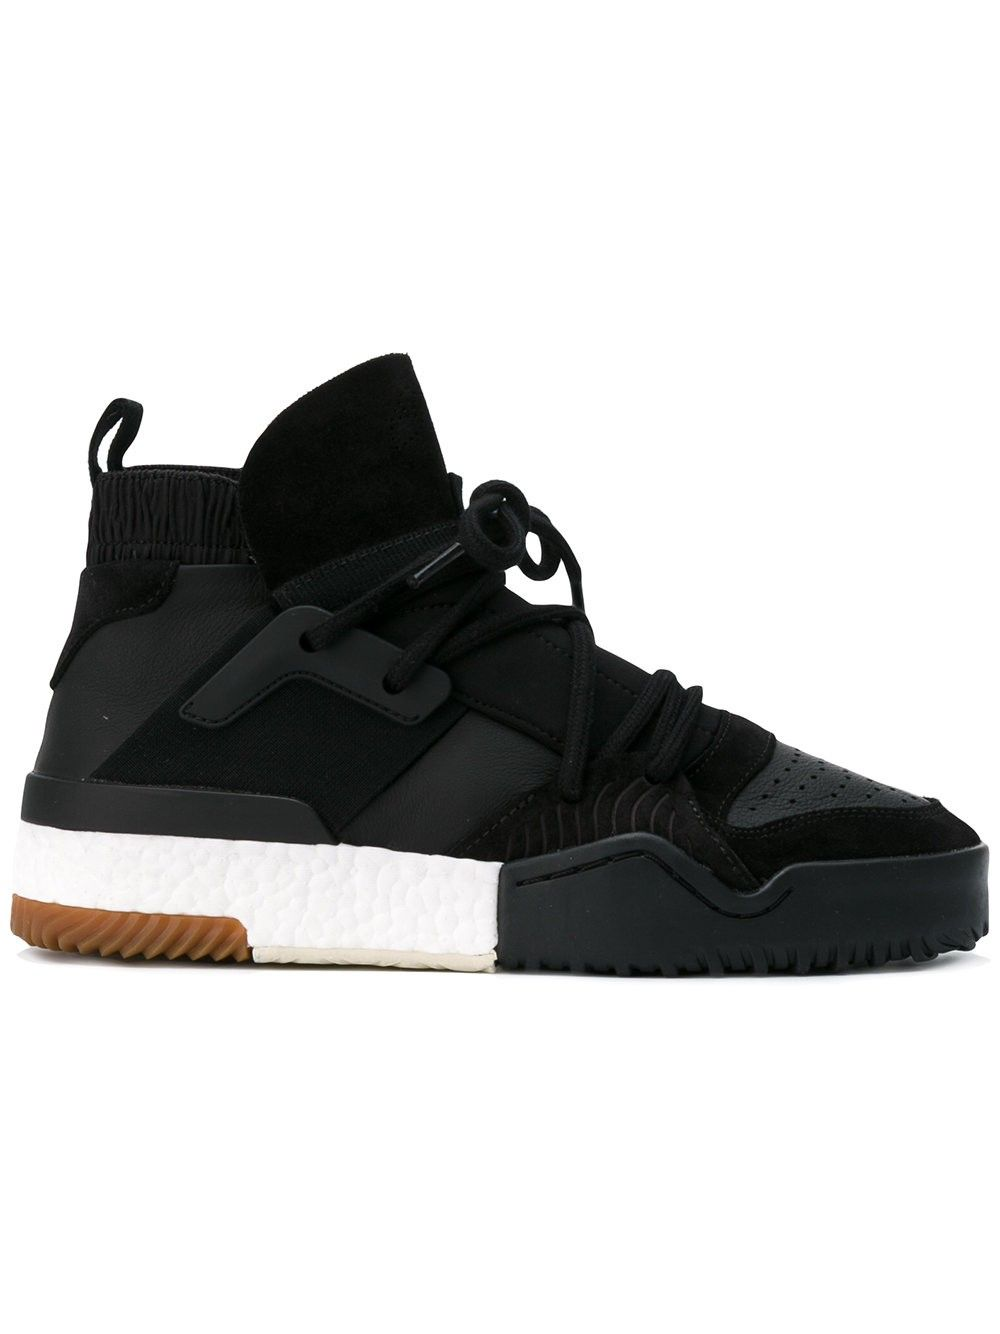 Black � ADIDAS ORIGINALS BY ALEXANDER WANG Basketball Hi-Top Sneakers.  #adidasoriginalsbyalexanderwang #shoes #